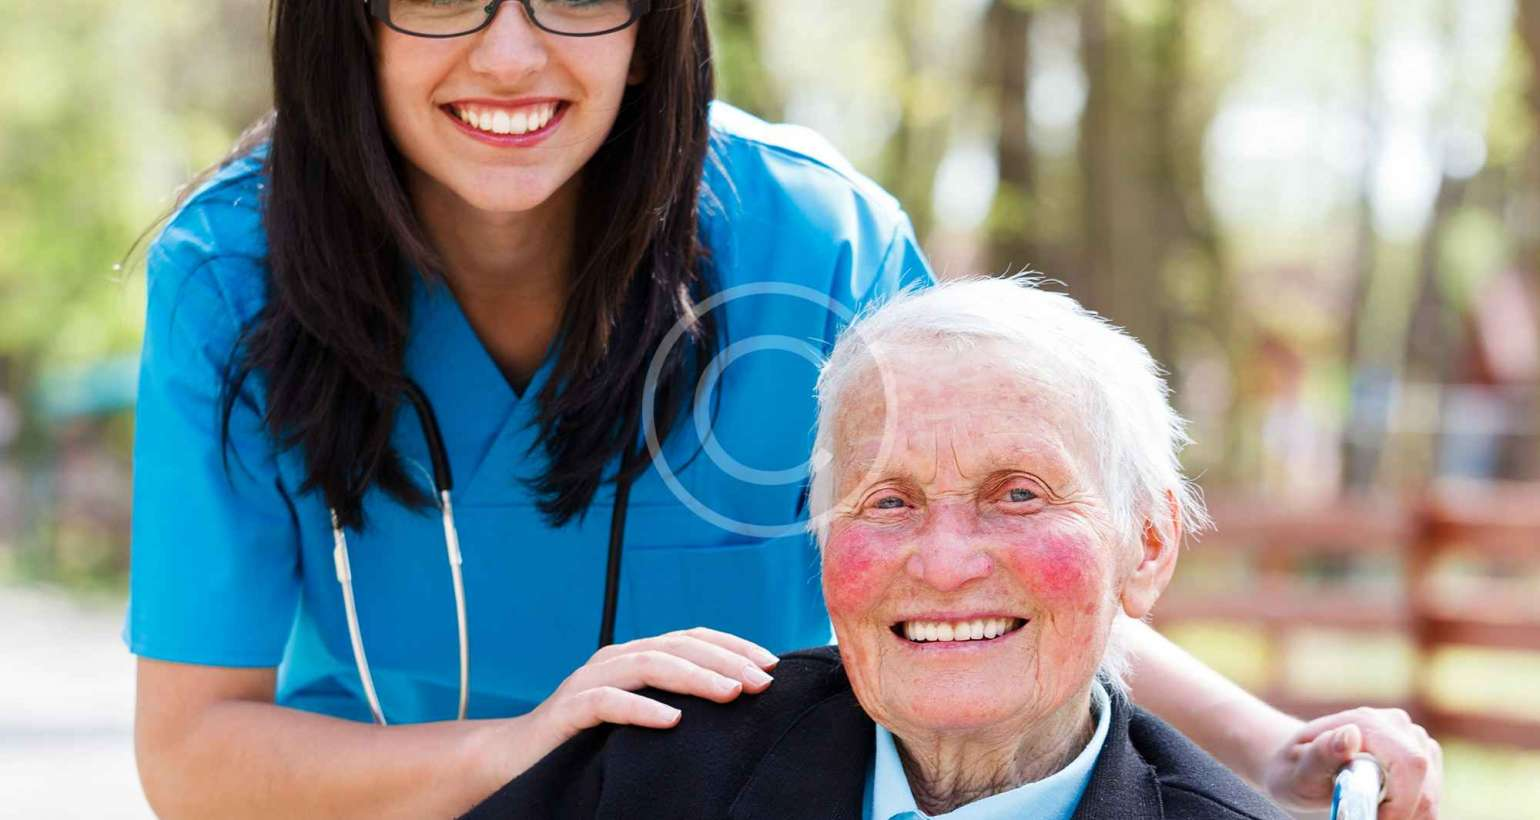 Home Care as Easy as 1-2-3!